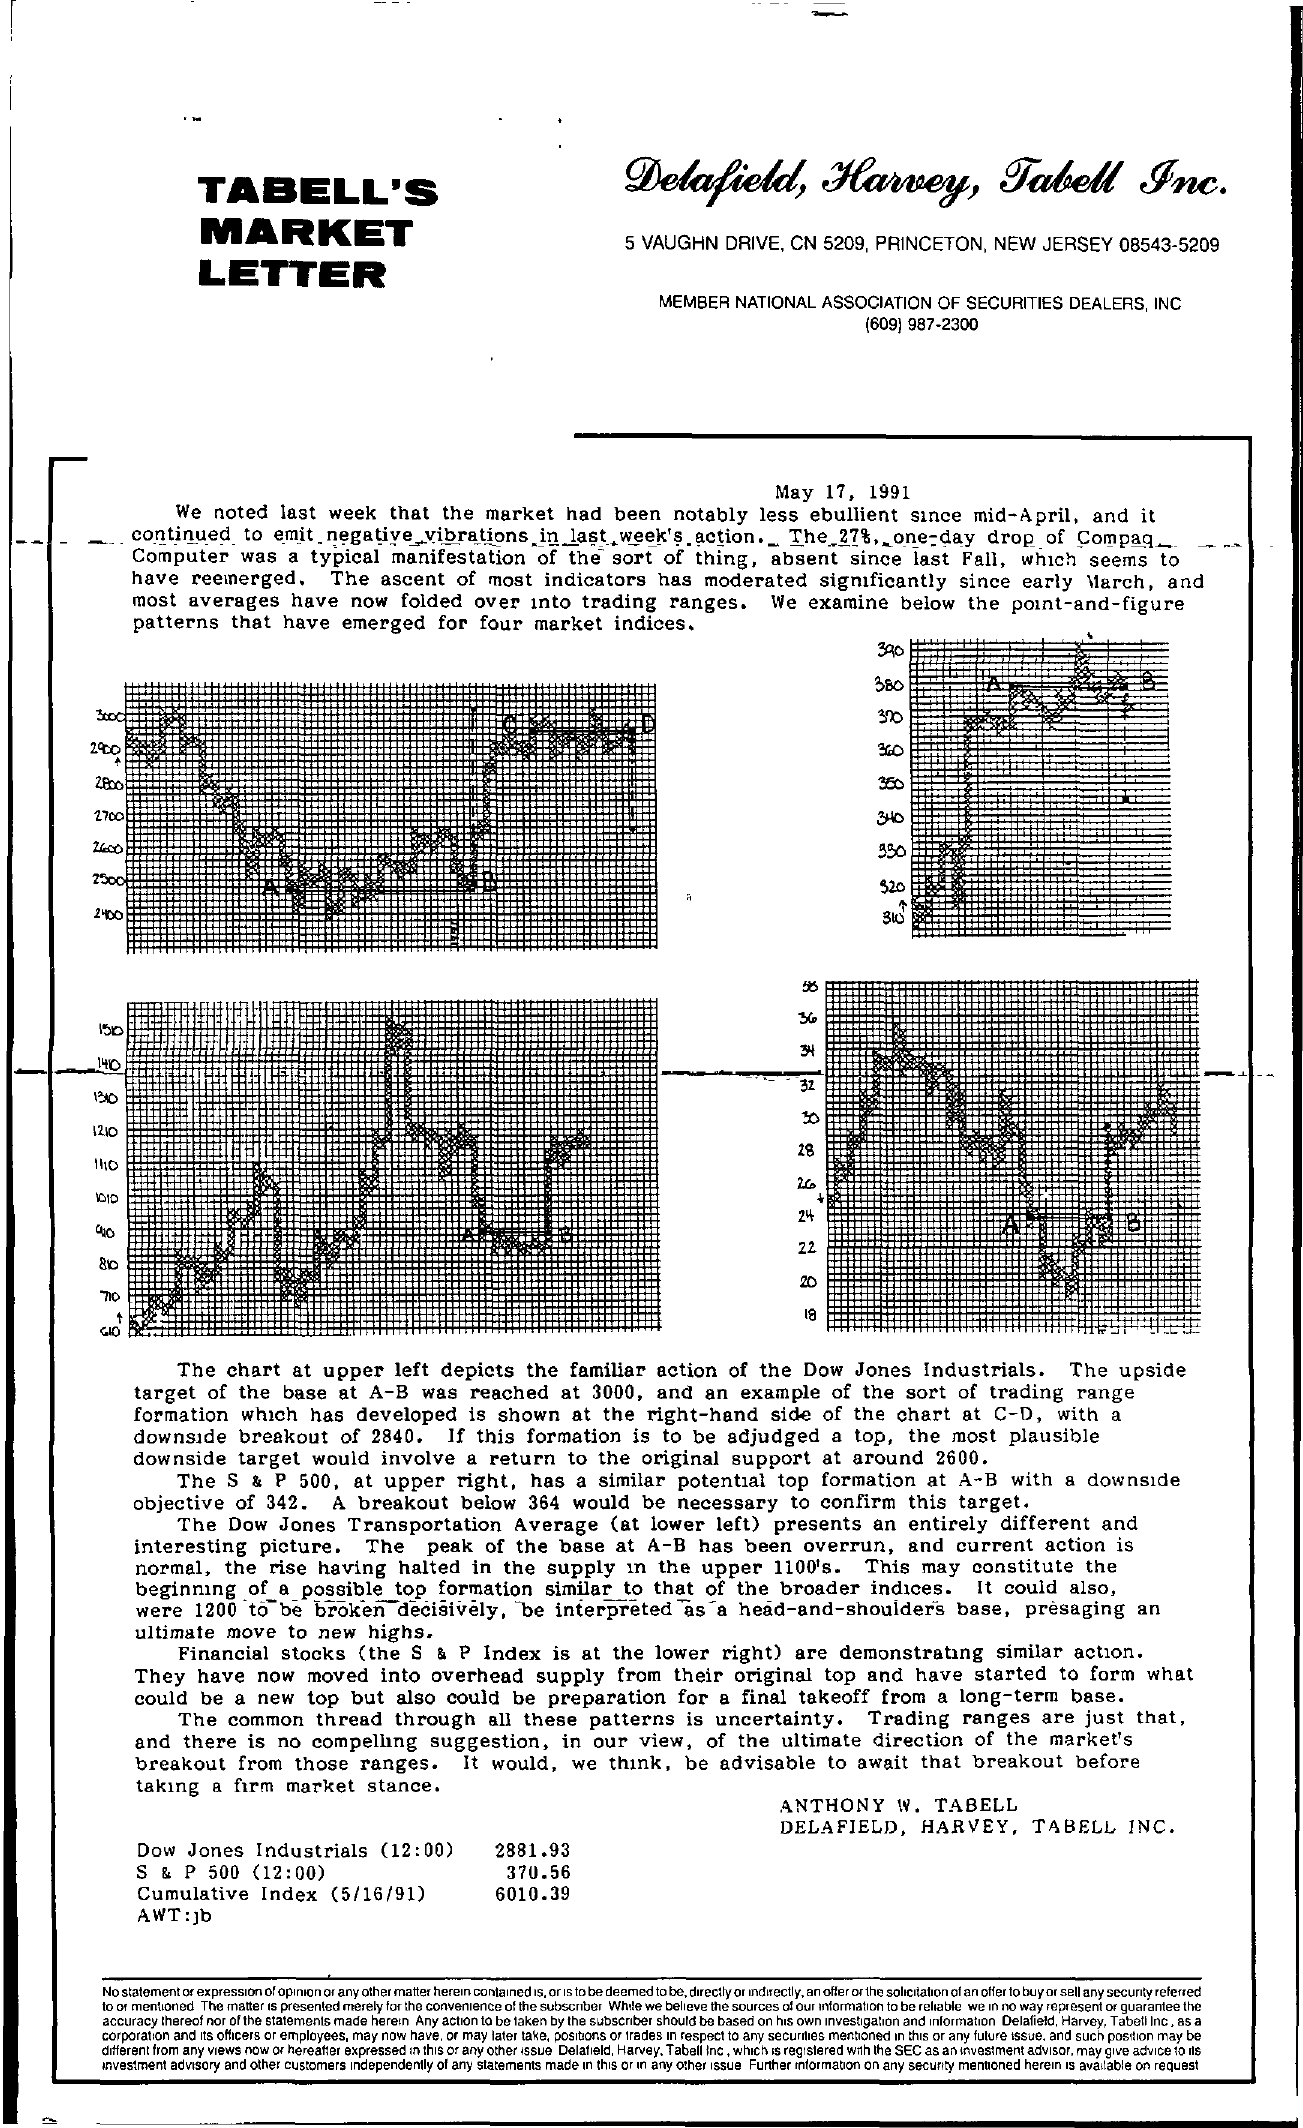 Tabell's Market Letter - May 17, 1991